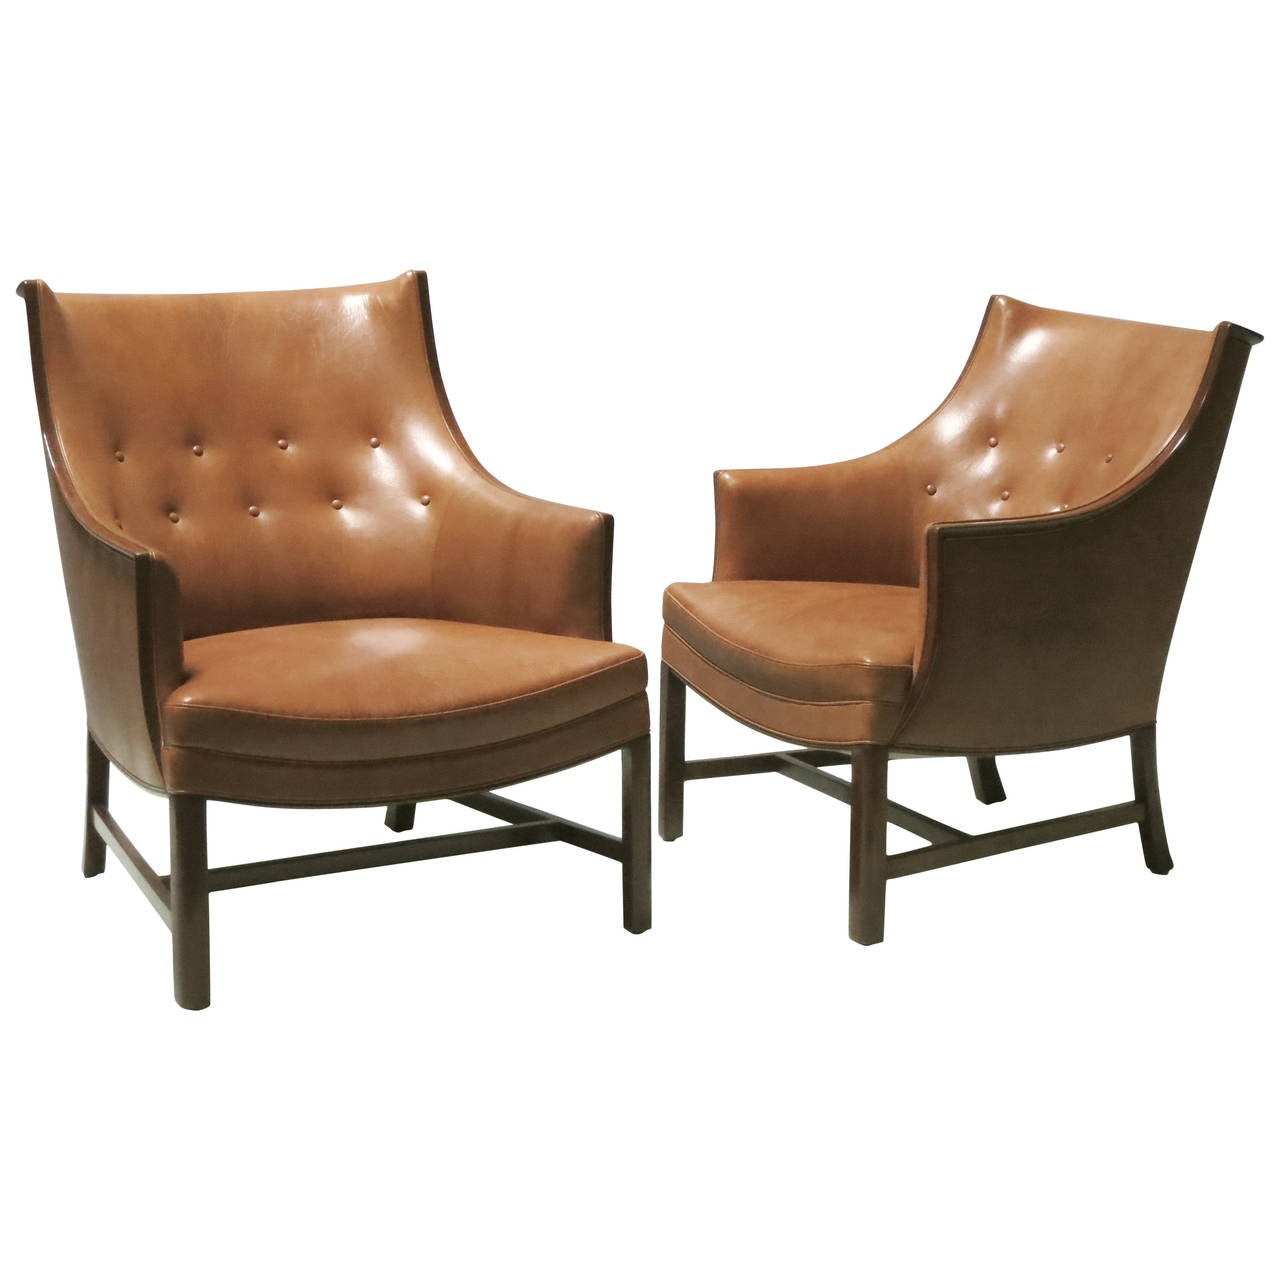 Pair of Refined 1930s Easy Chairs by Frits Henningsen 1